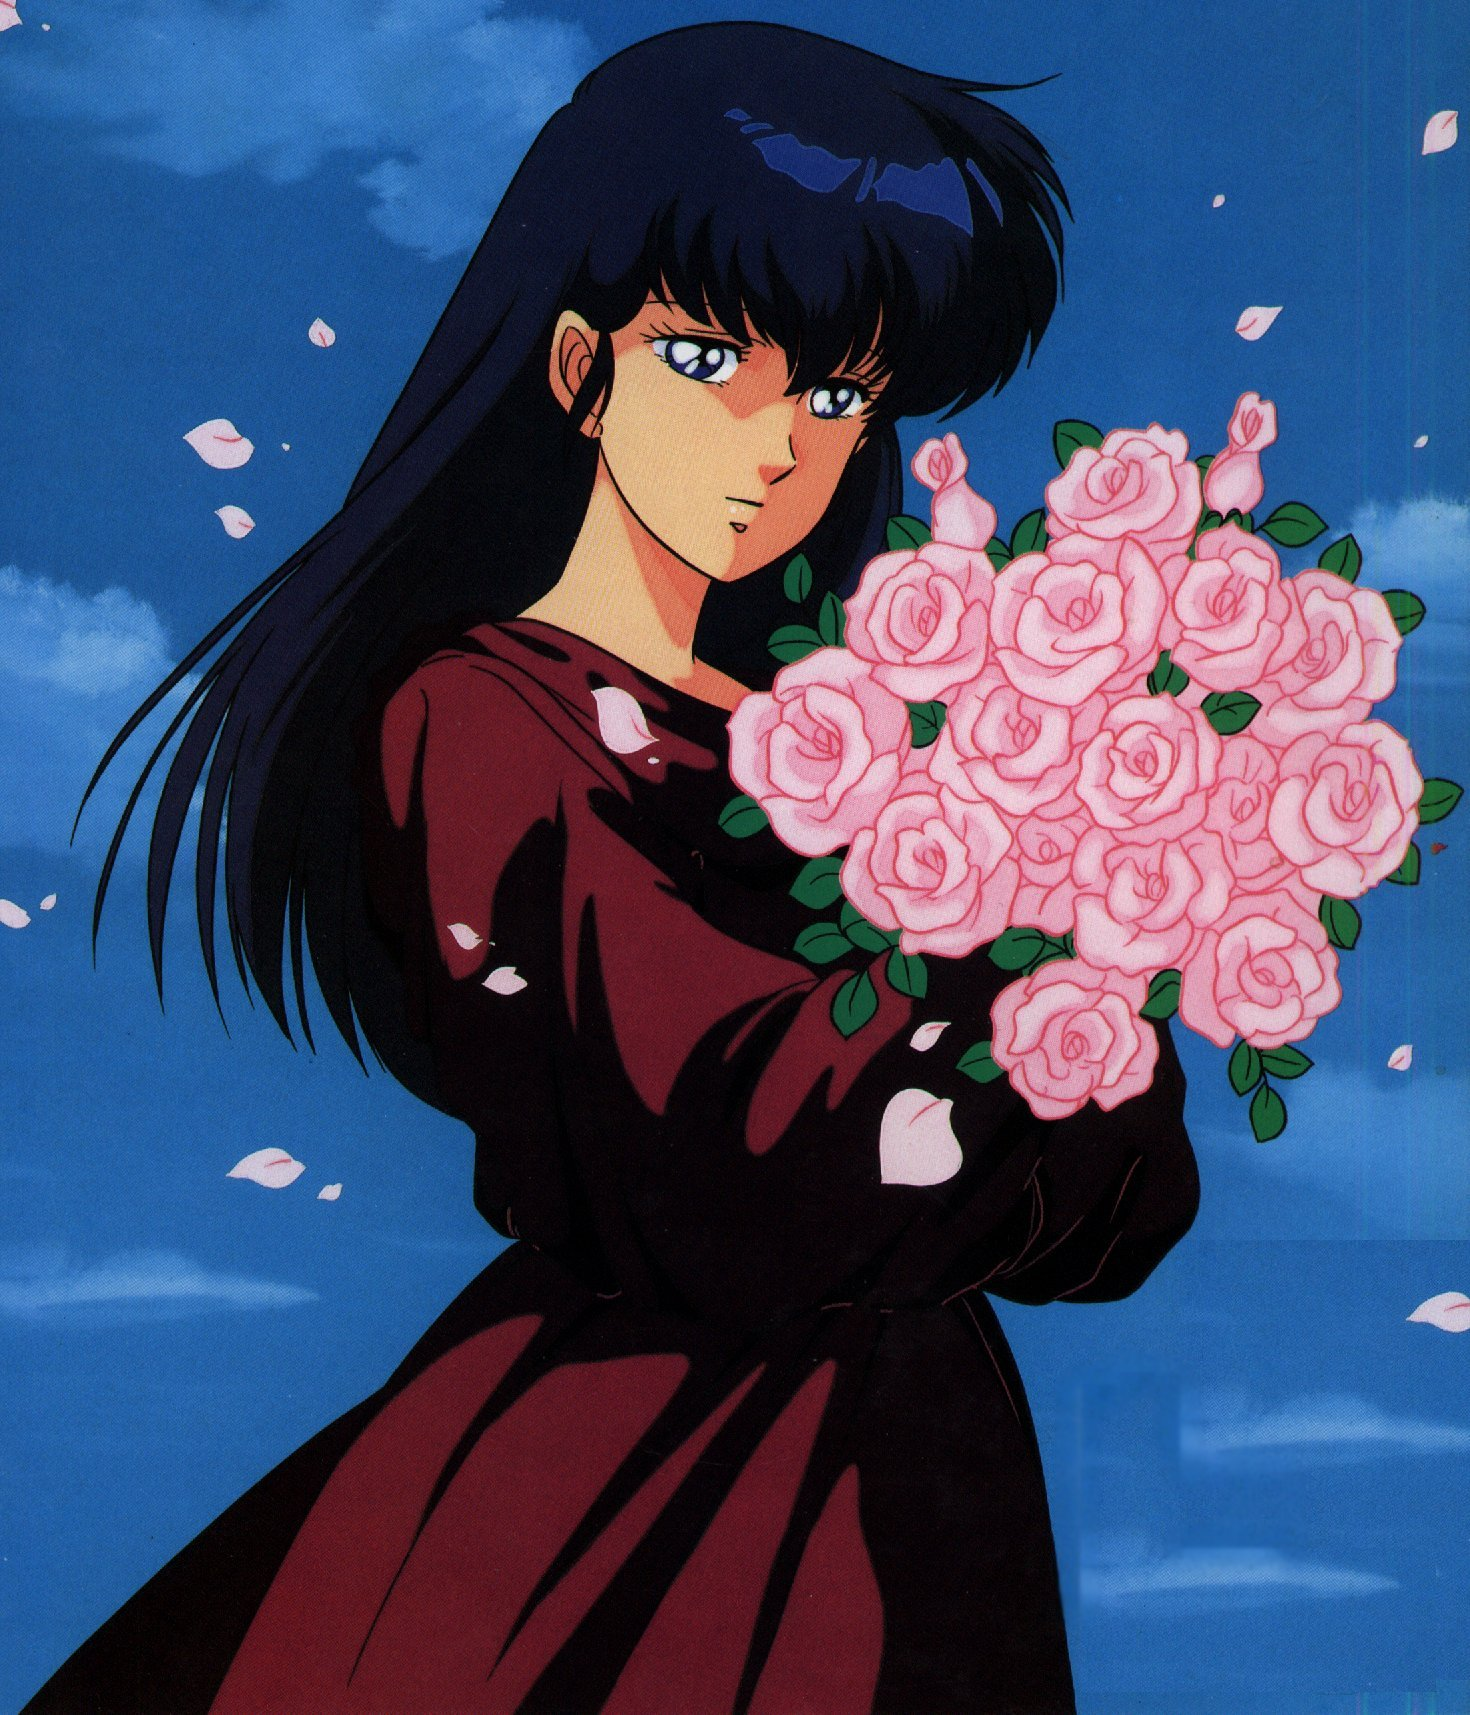 Maison Ikkoku Images Kyoko Otonashi Hd Wallpaper And Background Photos 31763383